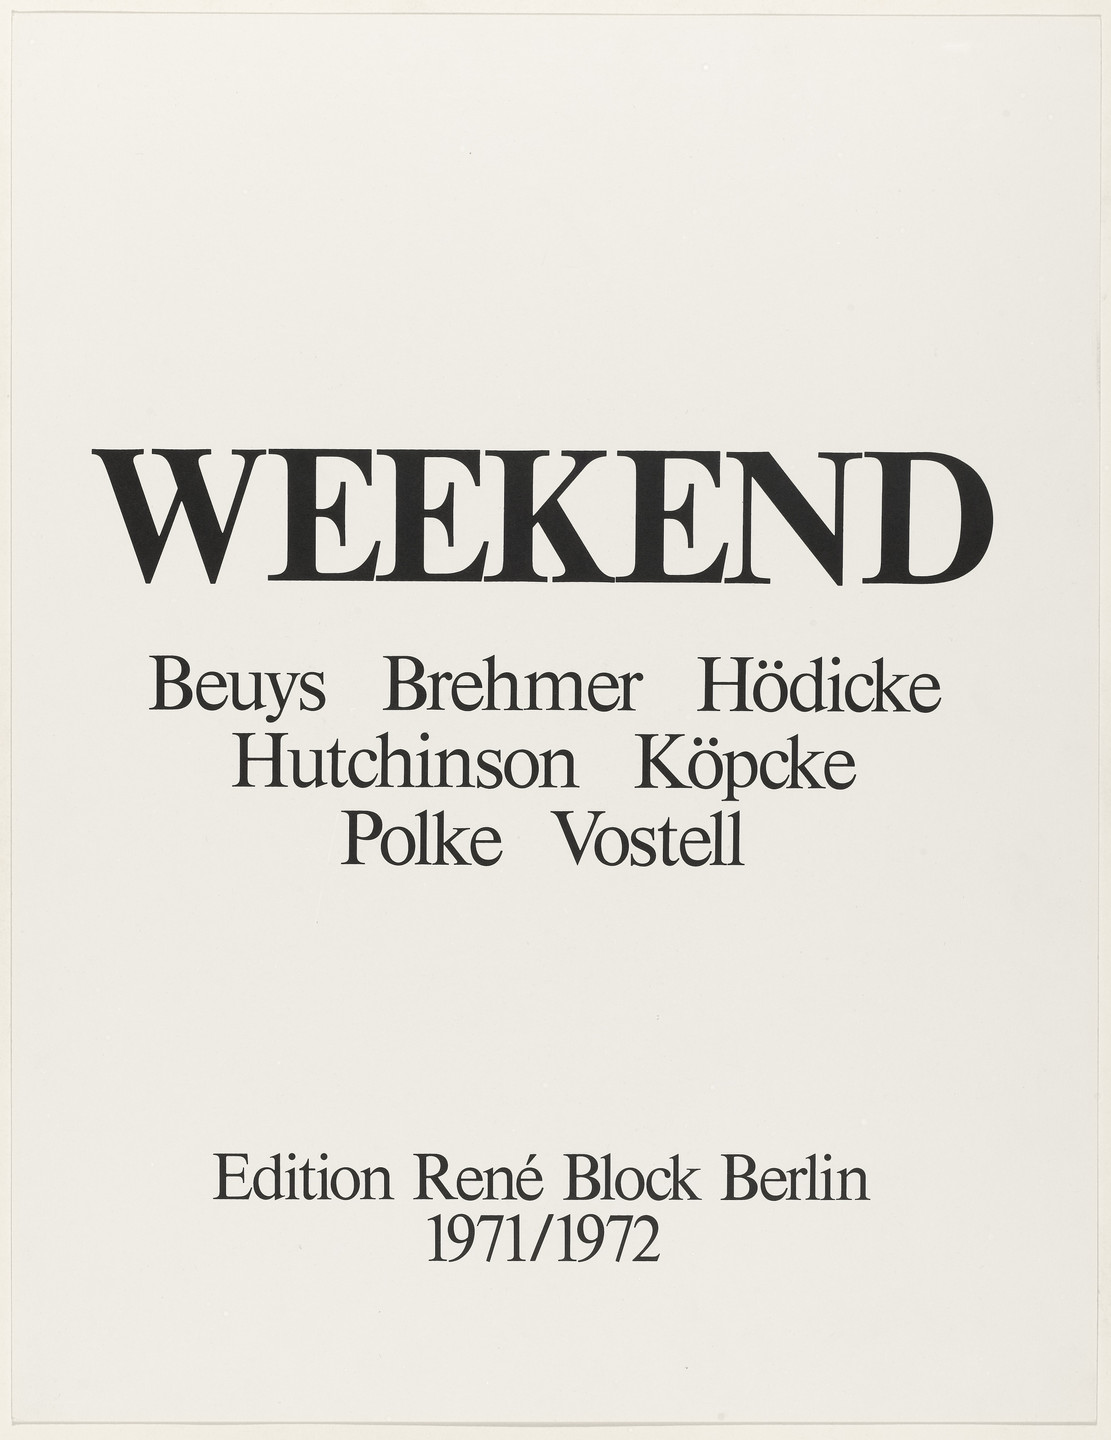 Joseph Beuys, K. P. Brehmer, K. H. Hödicke, Peter Hutchinson, Arthur Köpcke, Sigmar Polke, Wolf Vostell, Various Artists. Weekend. 1970–72, published 1972